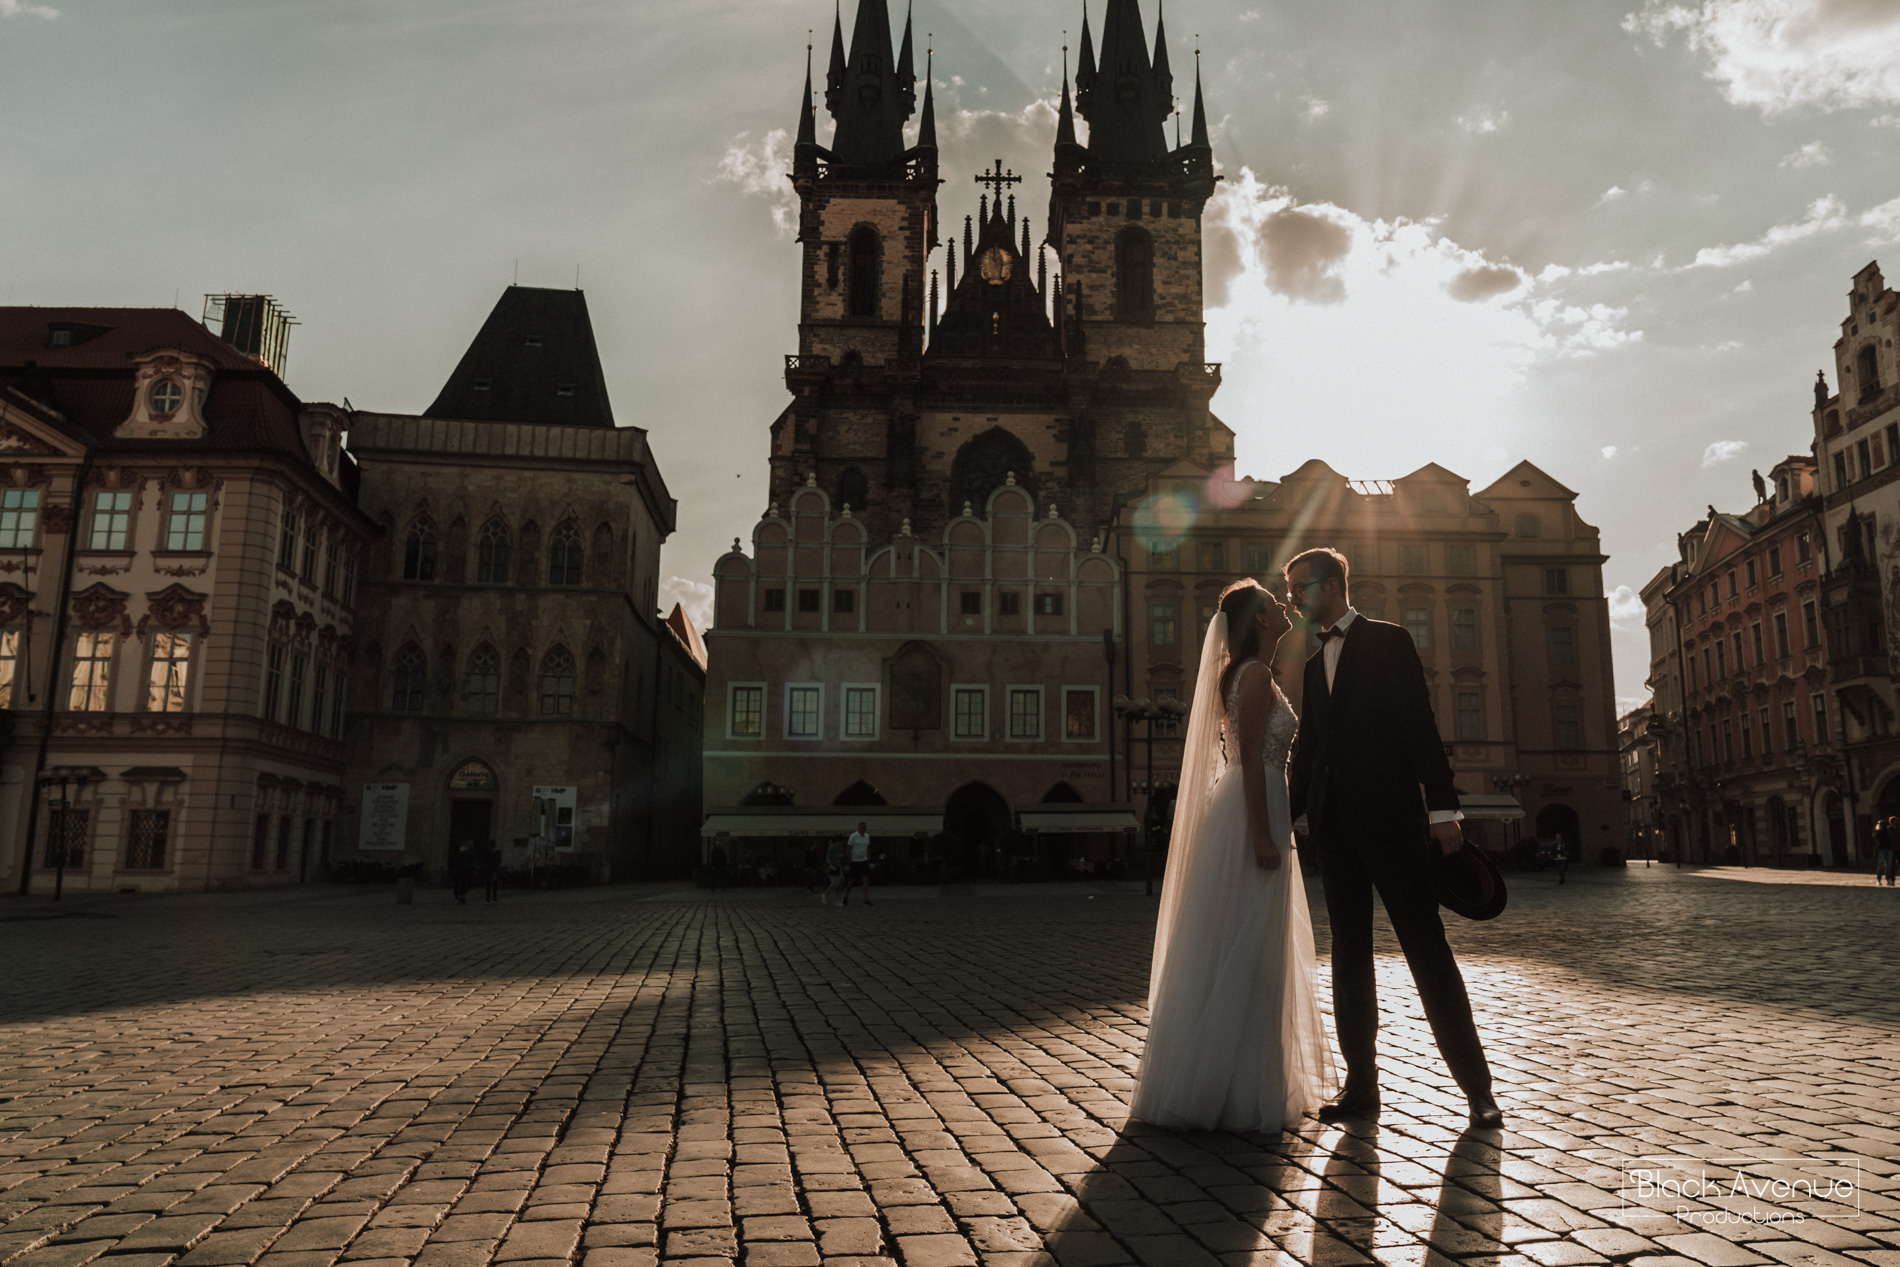 Anna and Libor wedding at Prague Old Town square taken by destination wedding photographers Black Avenue Productions